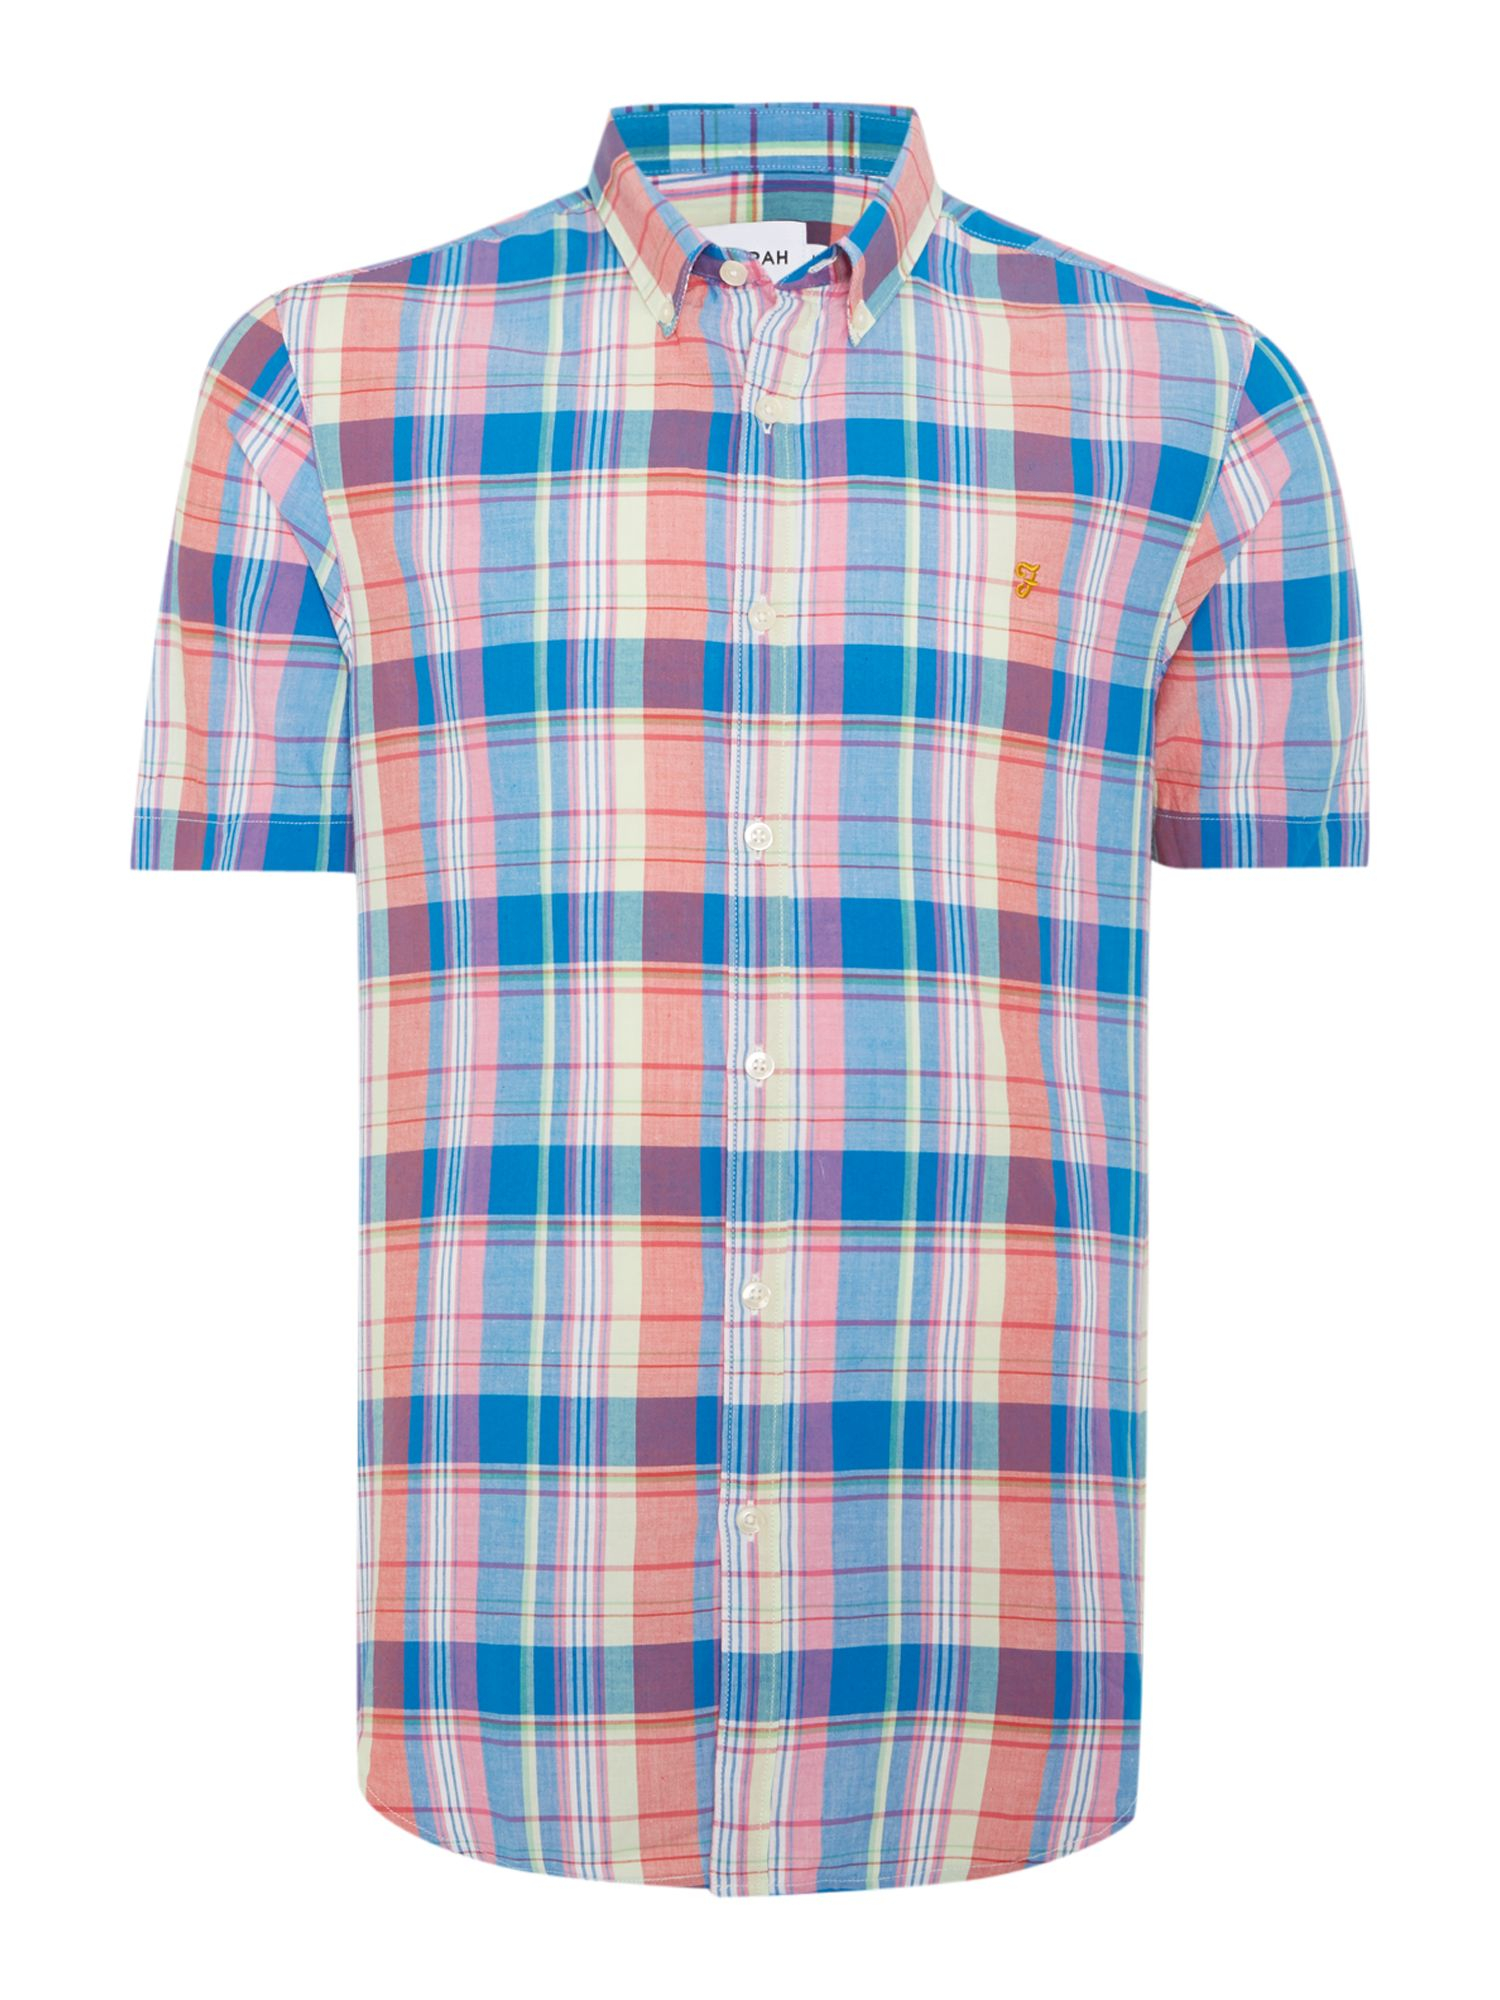 Lyst farah wylam slim fit short sleeve check shirt in for Slim fit check shirt